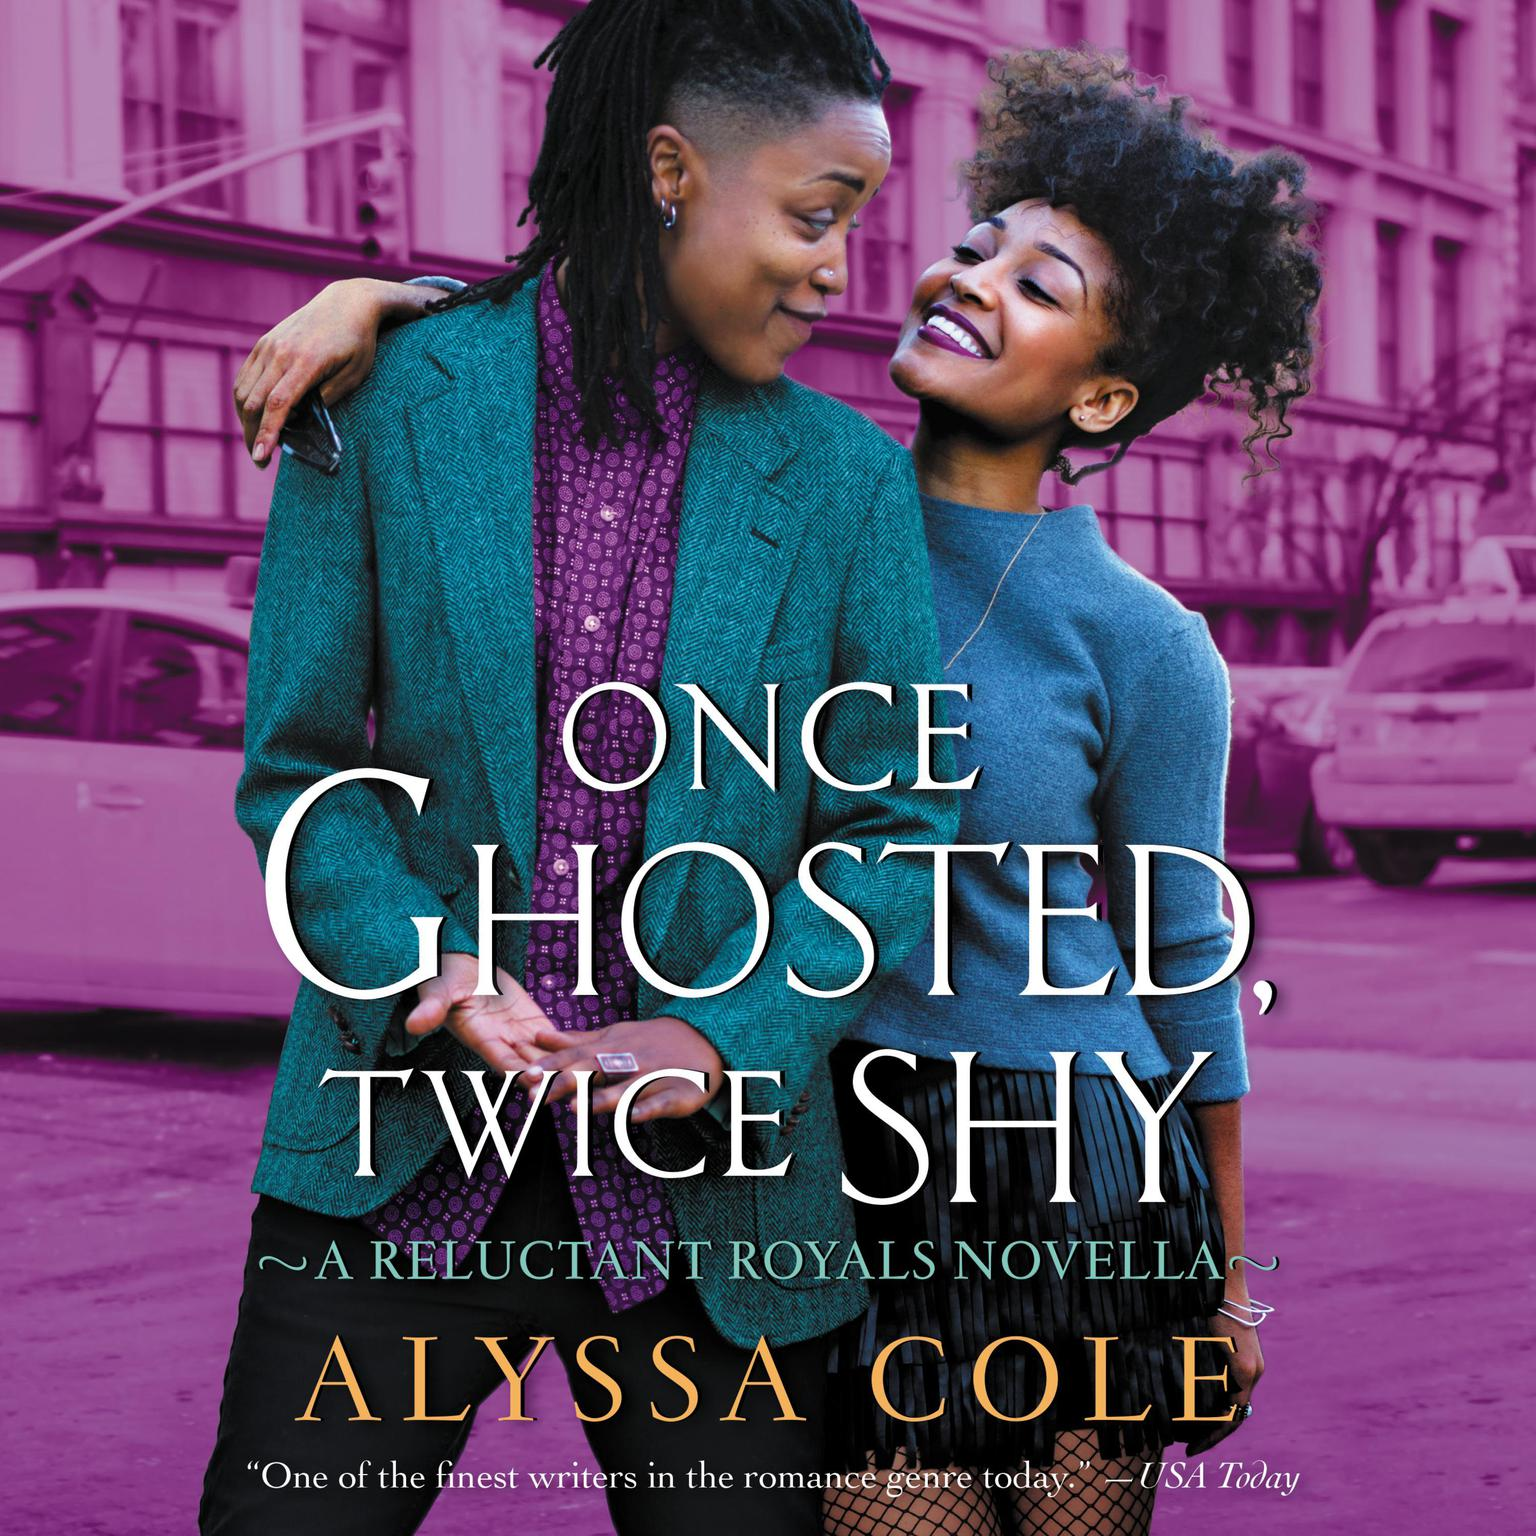 Printable Once Ghosted, Twice Shy: A Reluctant Royals Novella Audiobook Cover Art